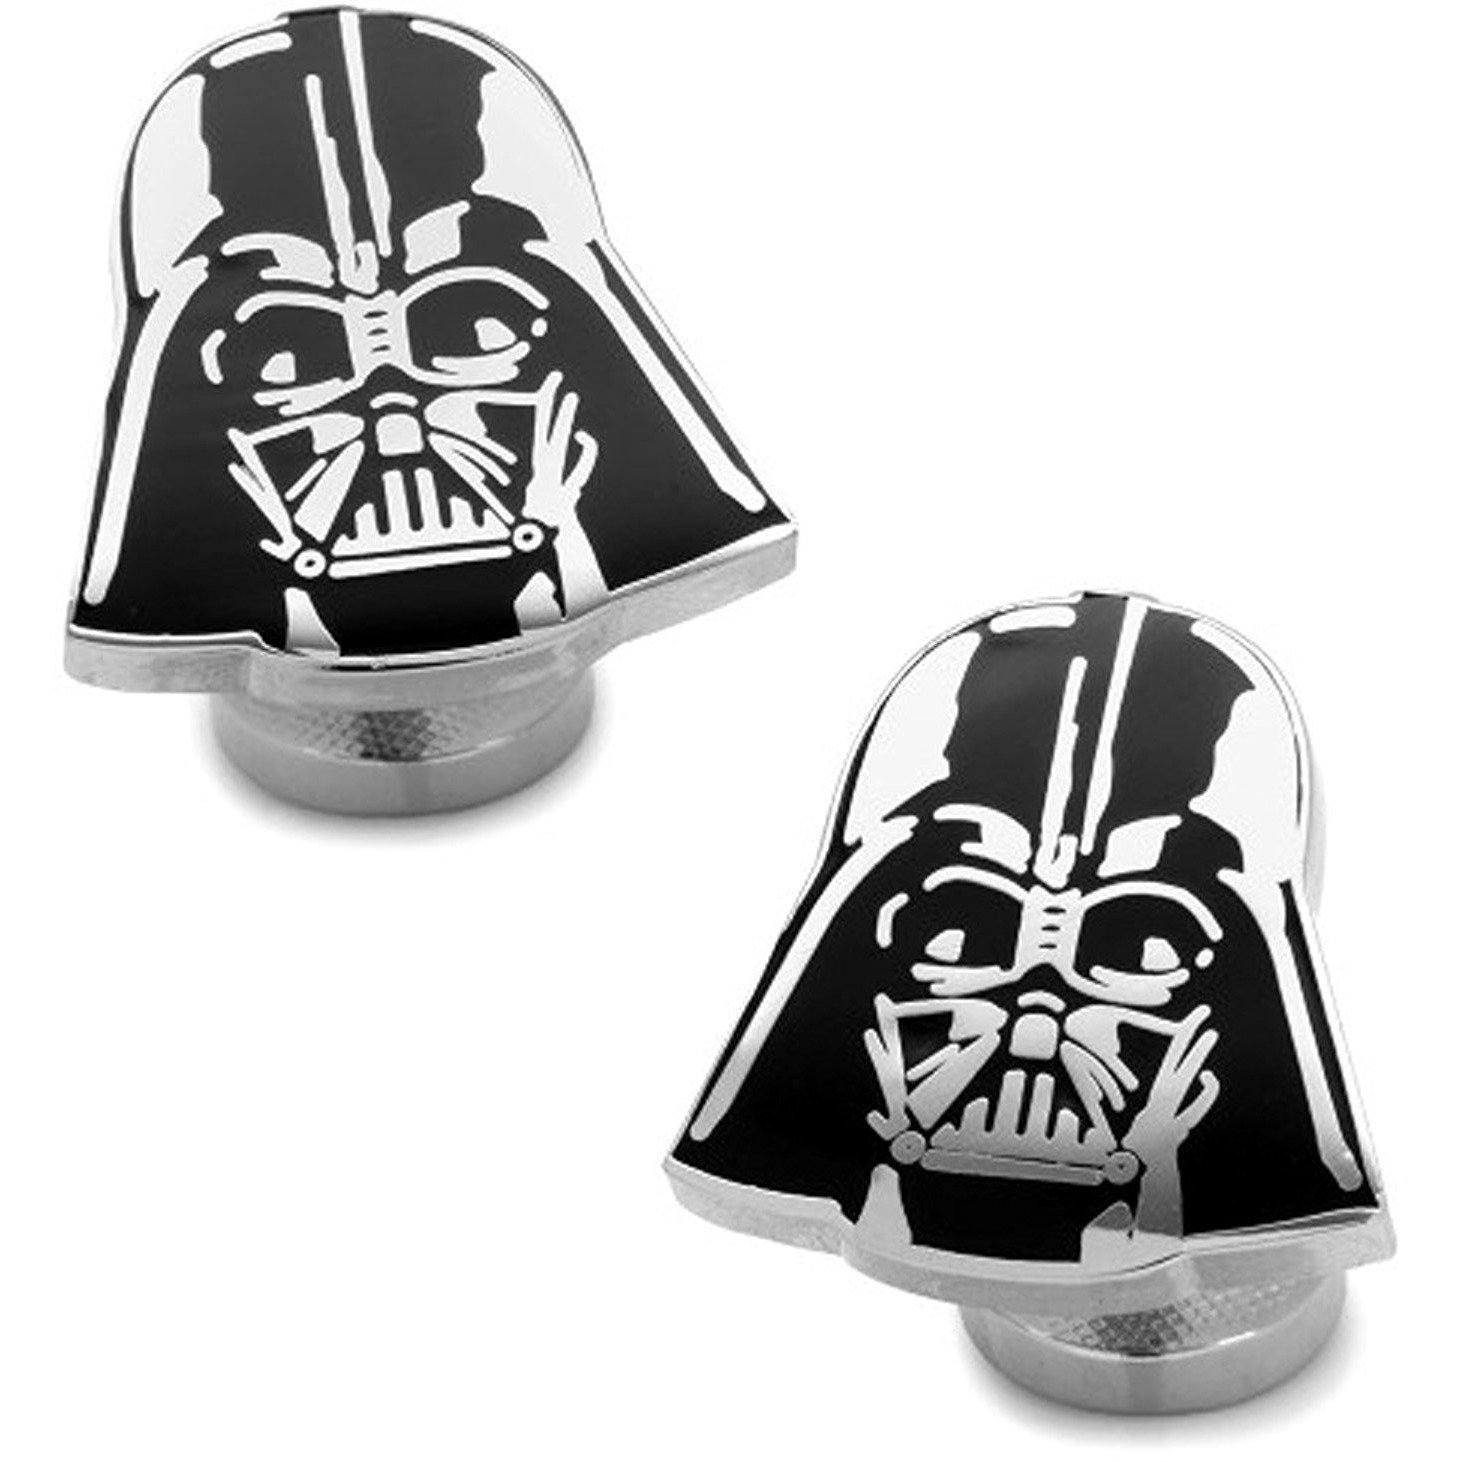 Star Wars Darth Vader Cufflinks Novelty Cufflinks Star Wars Star Wars Darth Vader Cufflinks